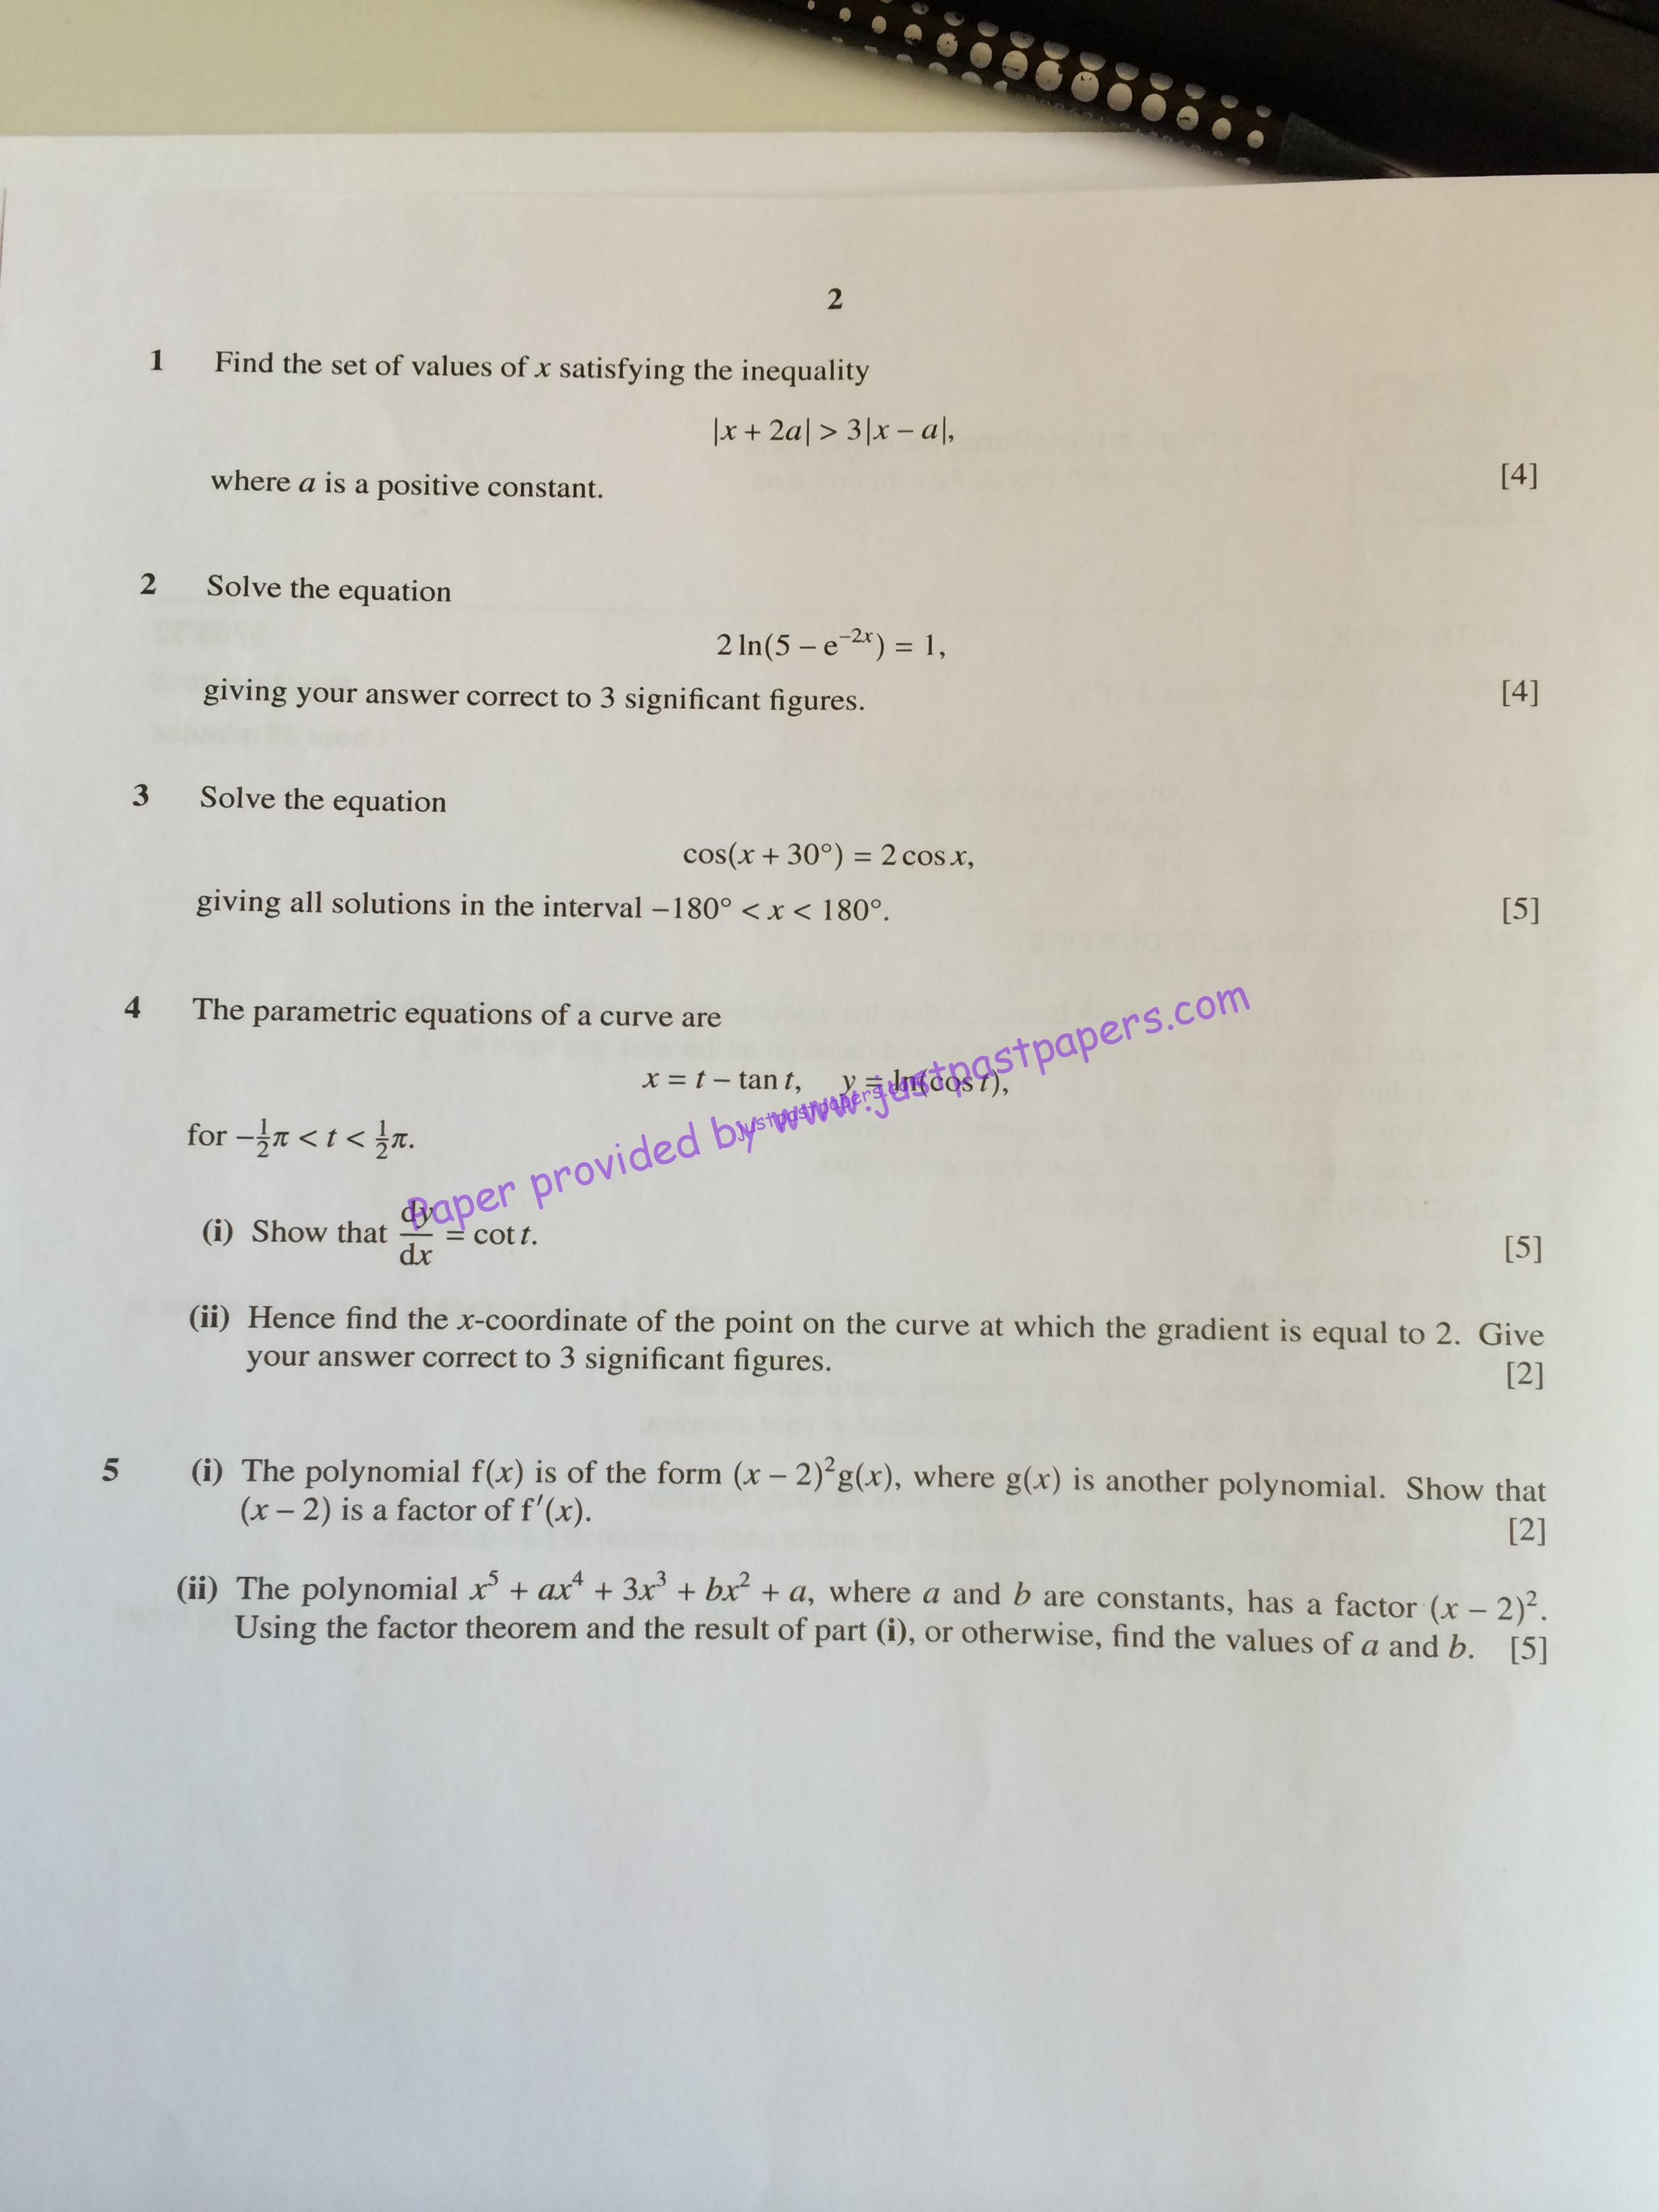 cpt question paper june 2016 pdf